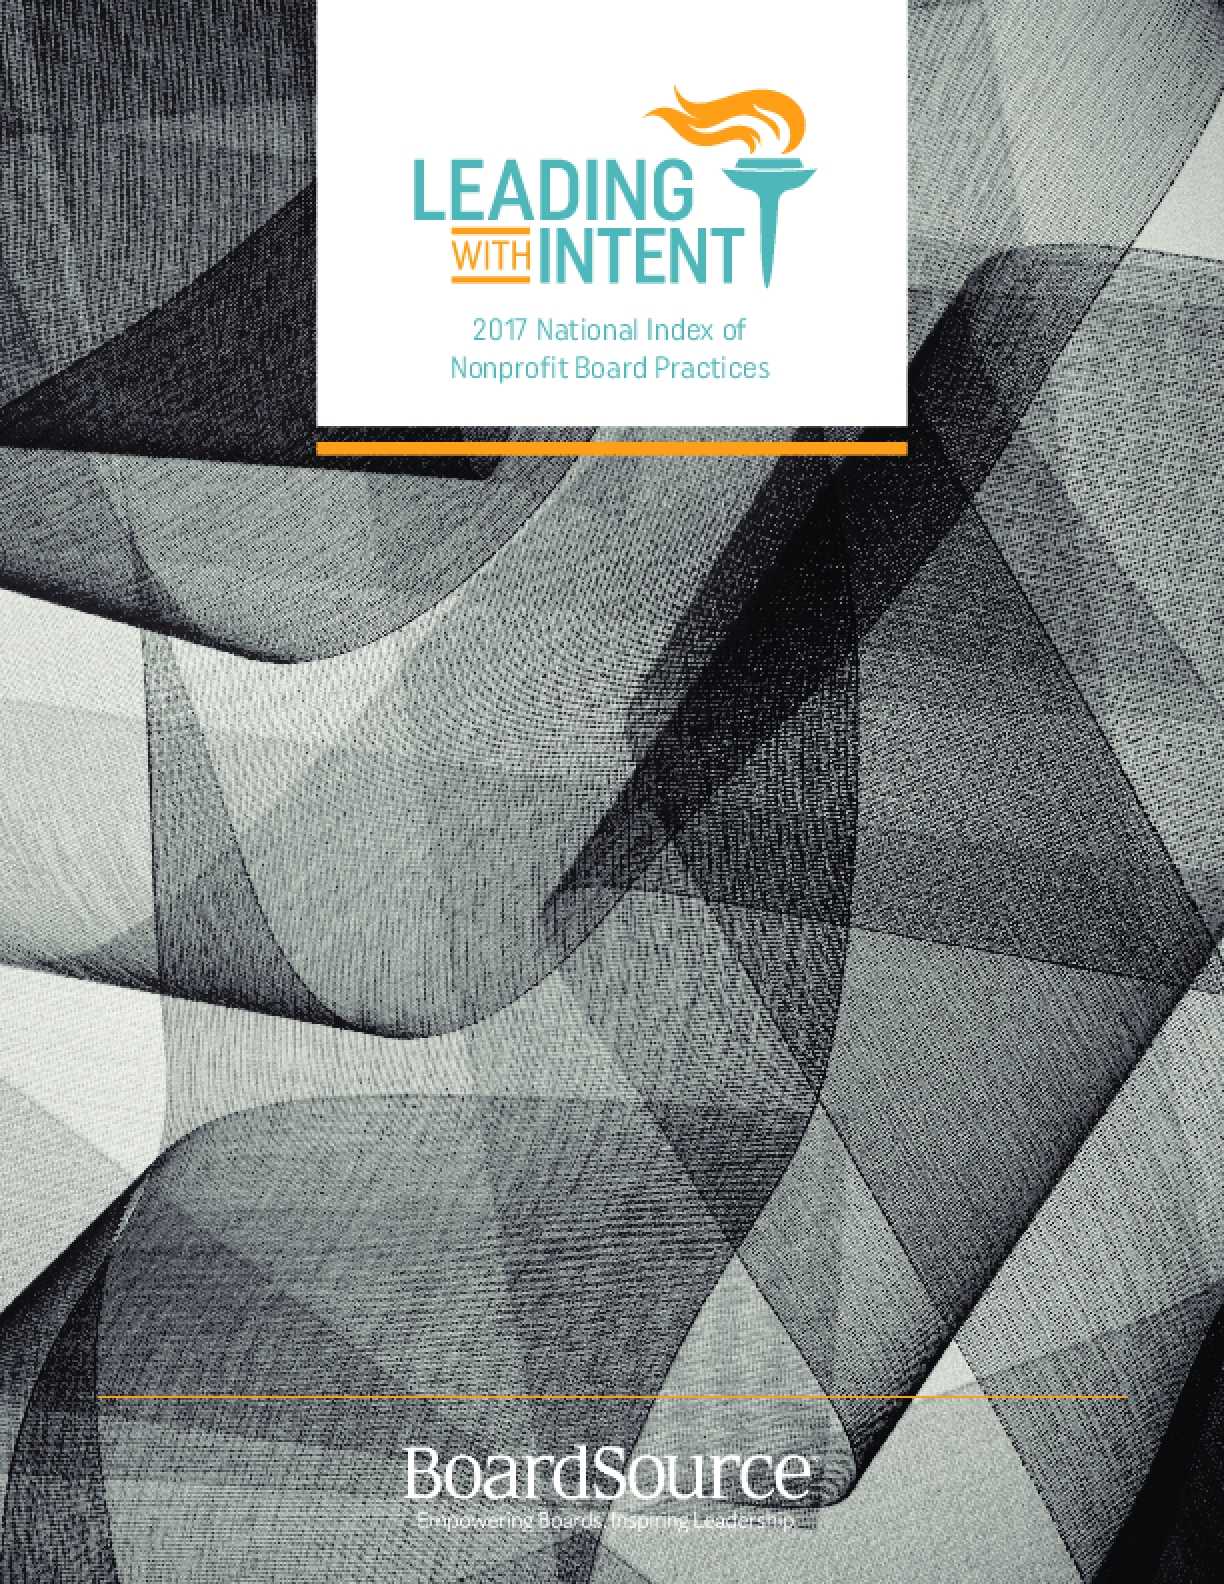 Leading With Intent: 2017 National Index of Nonprofit Board Practices